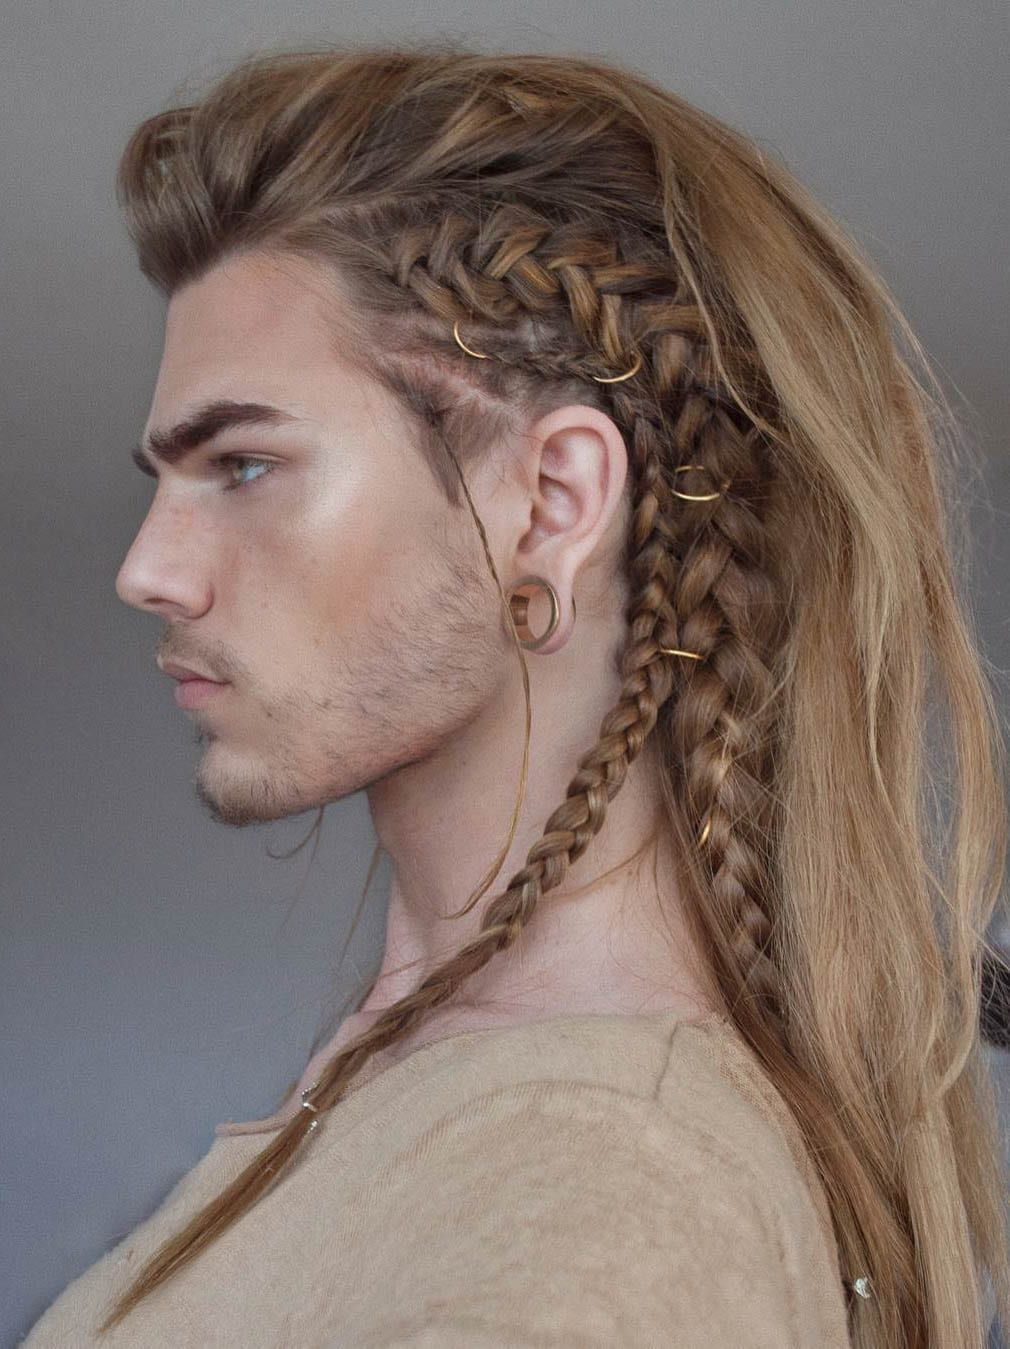 10 Modern Long Hairstyles For Men Hairstyles Long Men Modern Vikings 10 Modern Long Hairstyles For Men Long Hair Styles Men Hair Styles Viking Hair